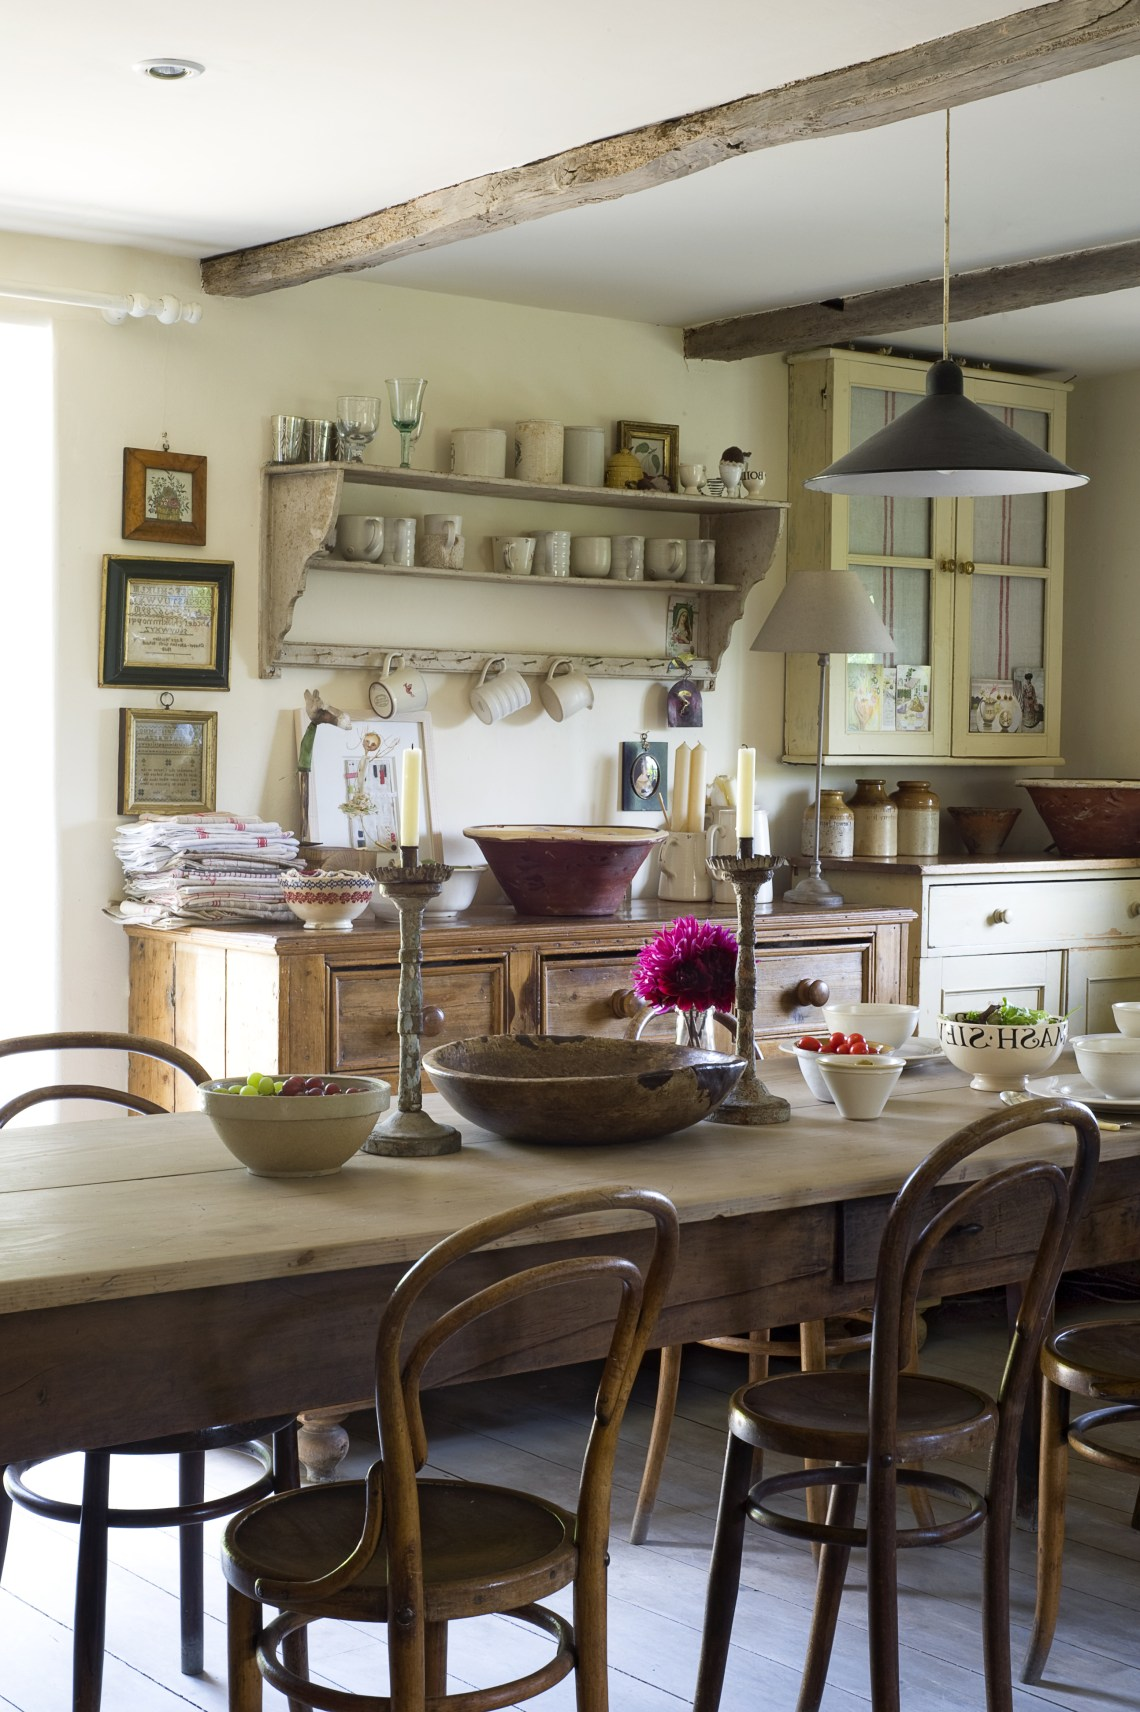 6 Tips To Make Your Kitchen Feel Brighter